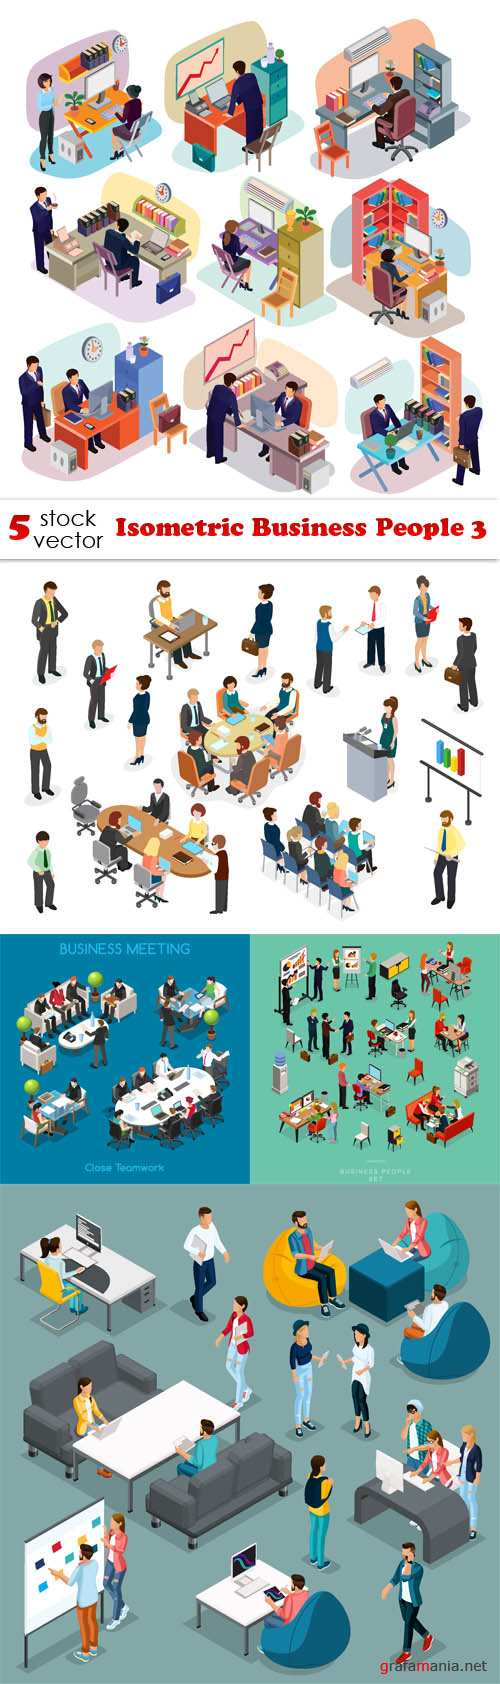 Vectors - Isometric Business People 3